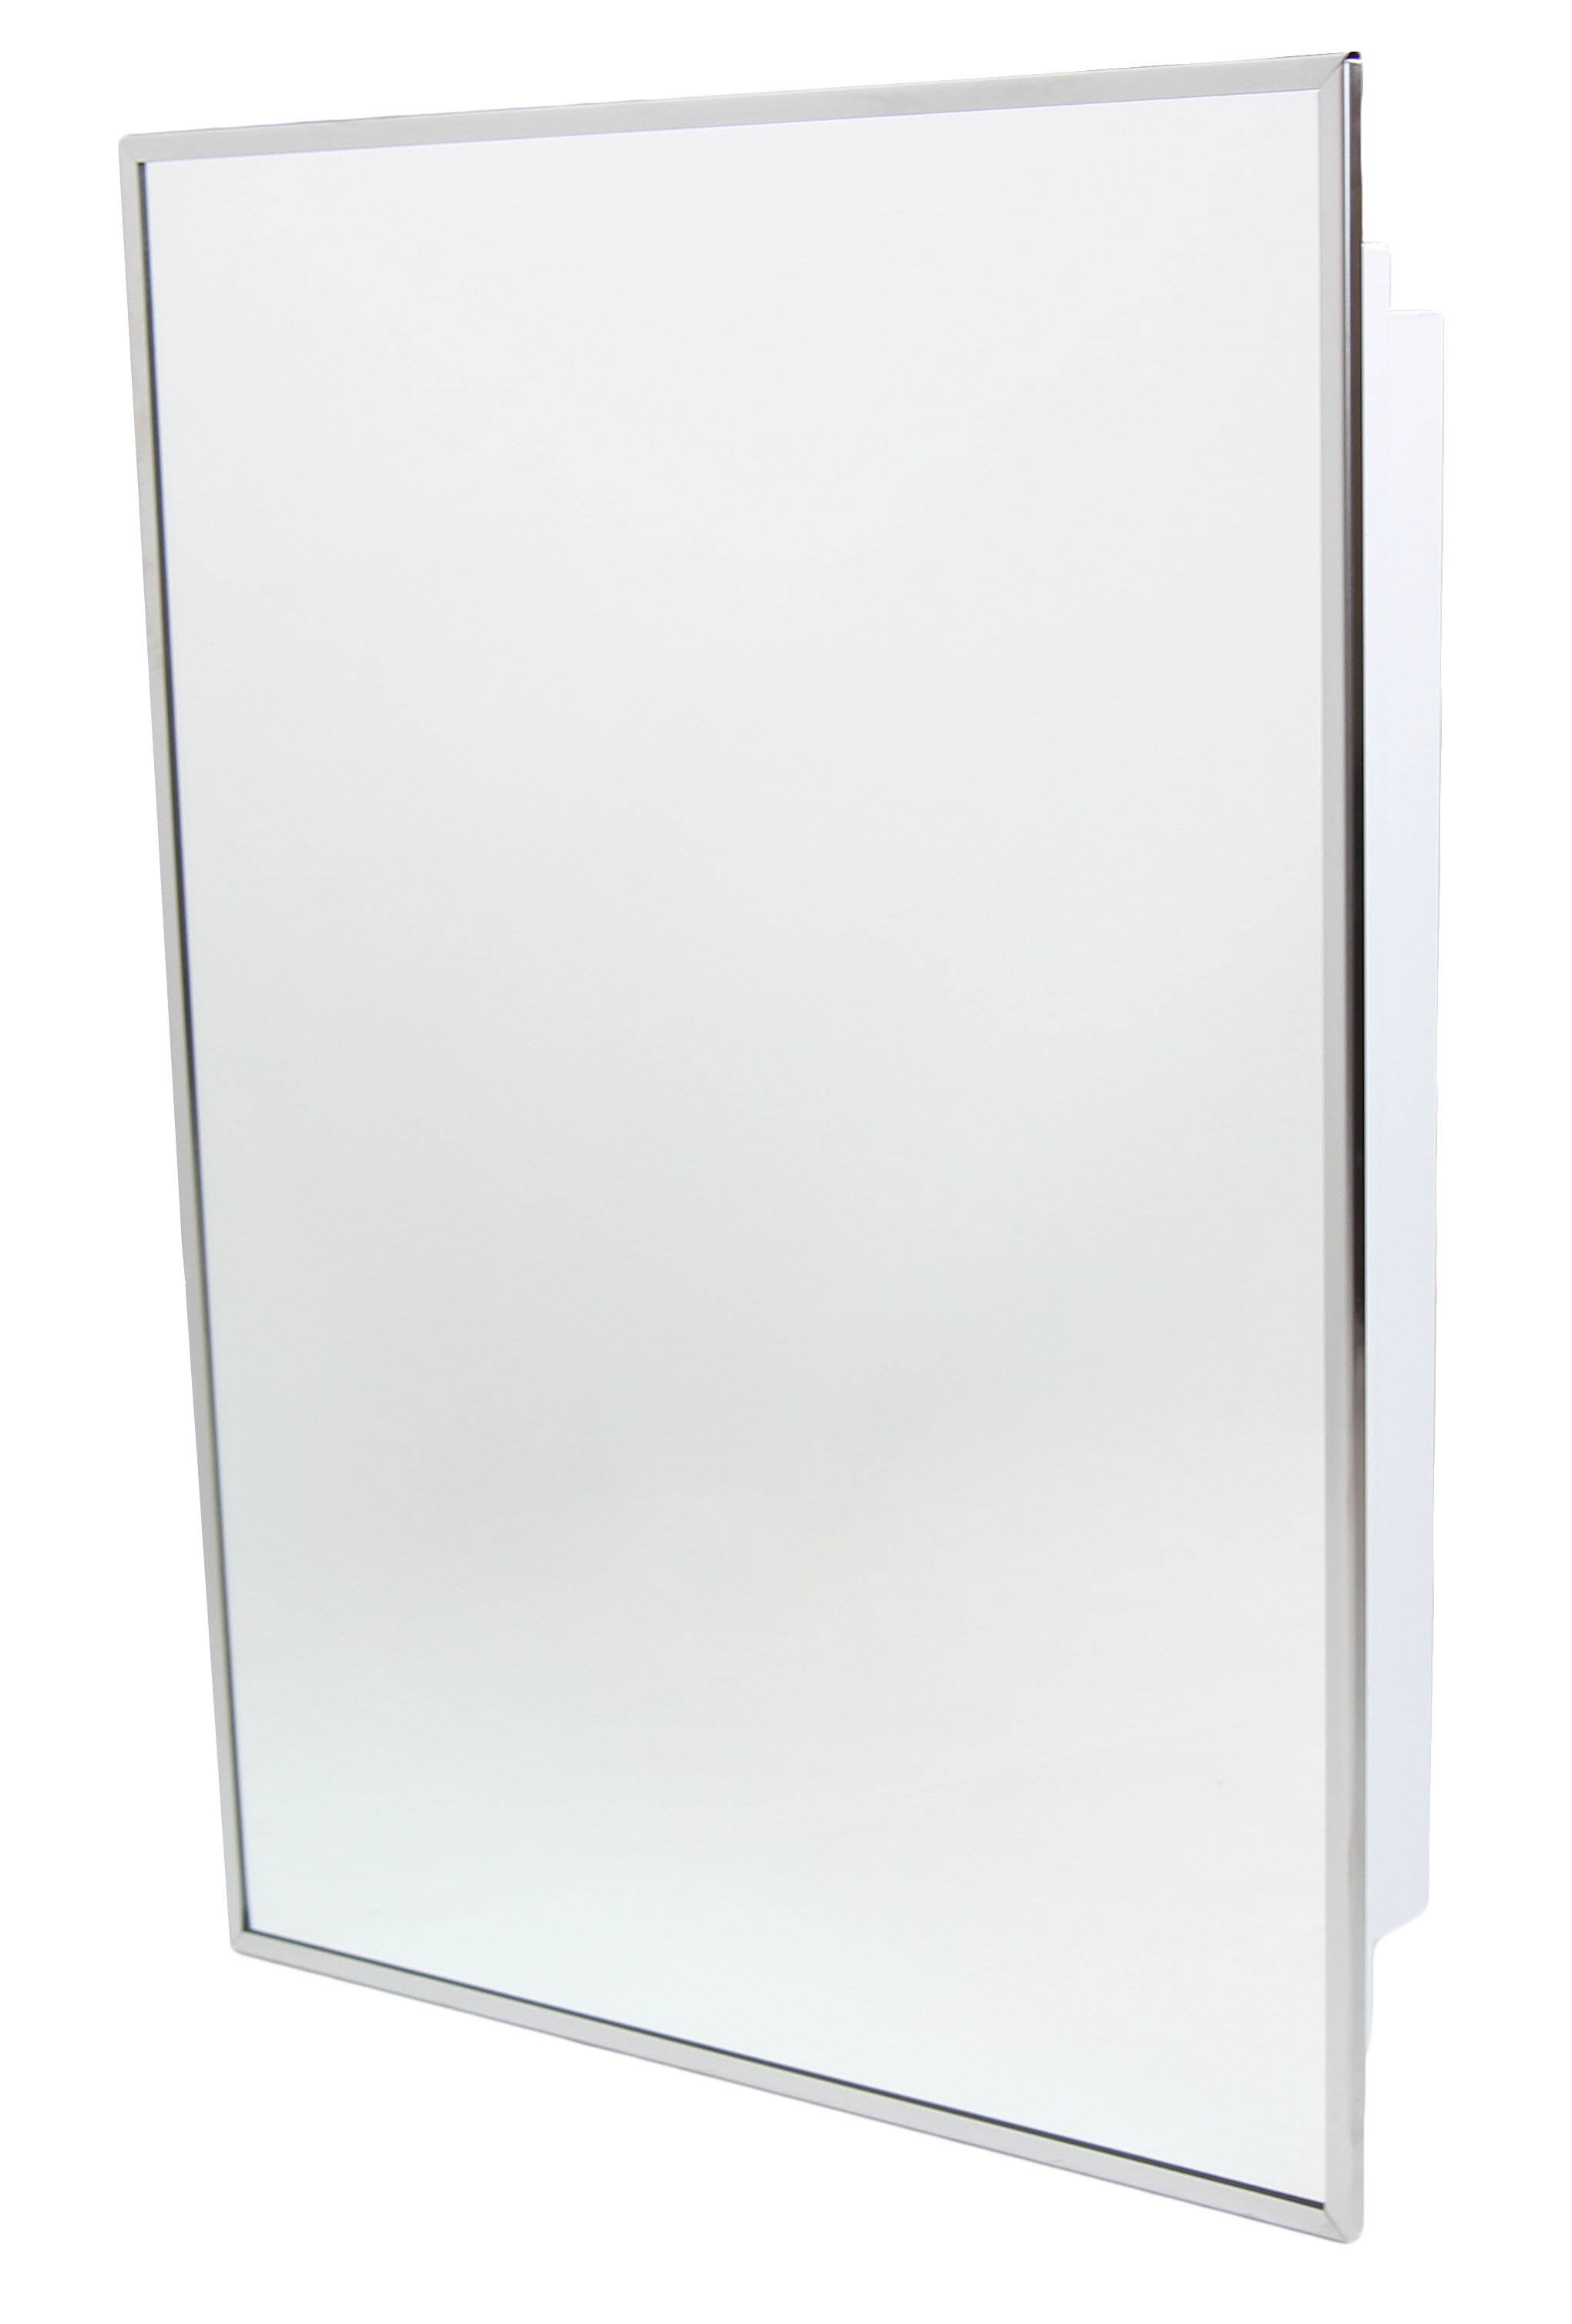 Awesome 24 X 30 Recessed Medicine Cabinet